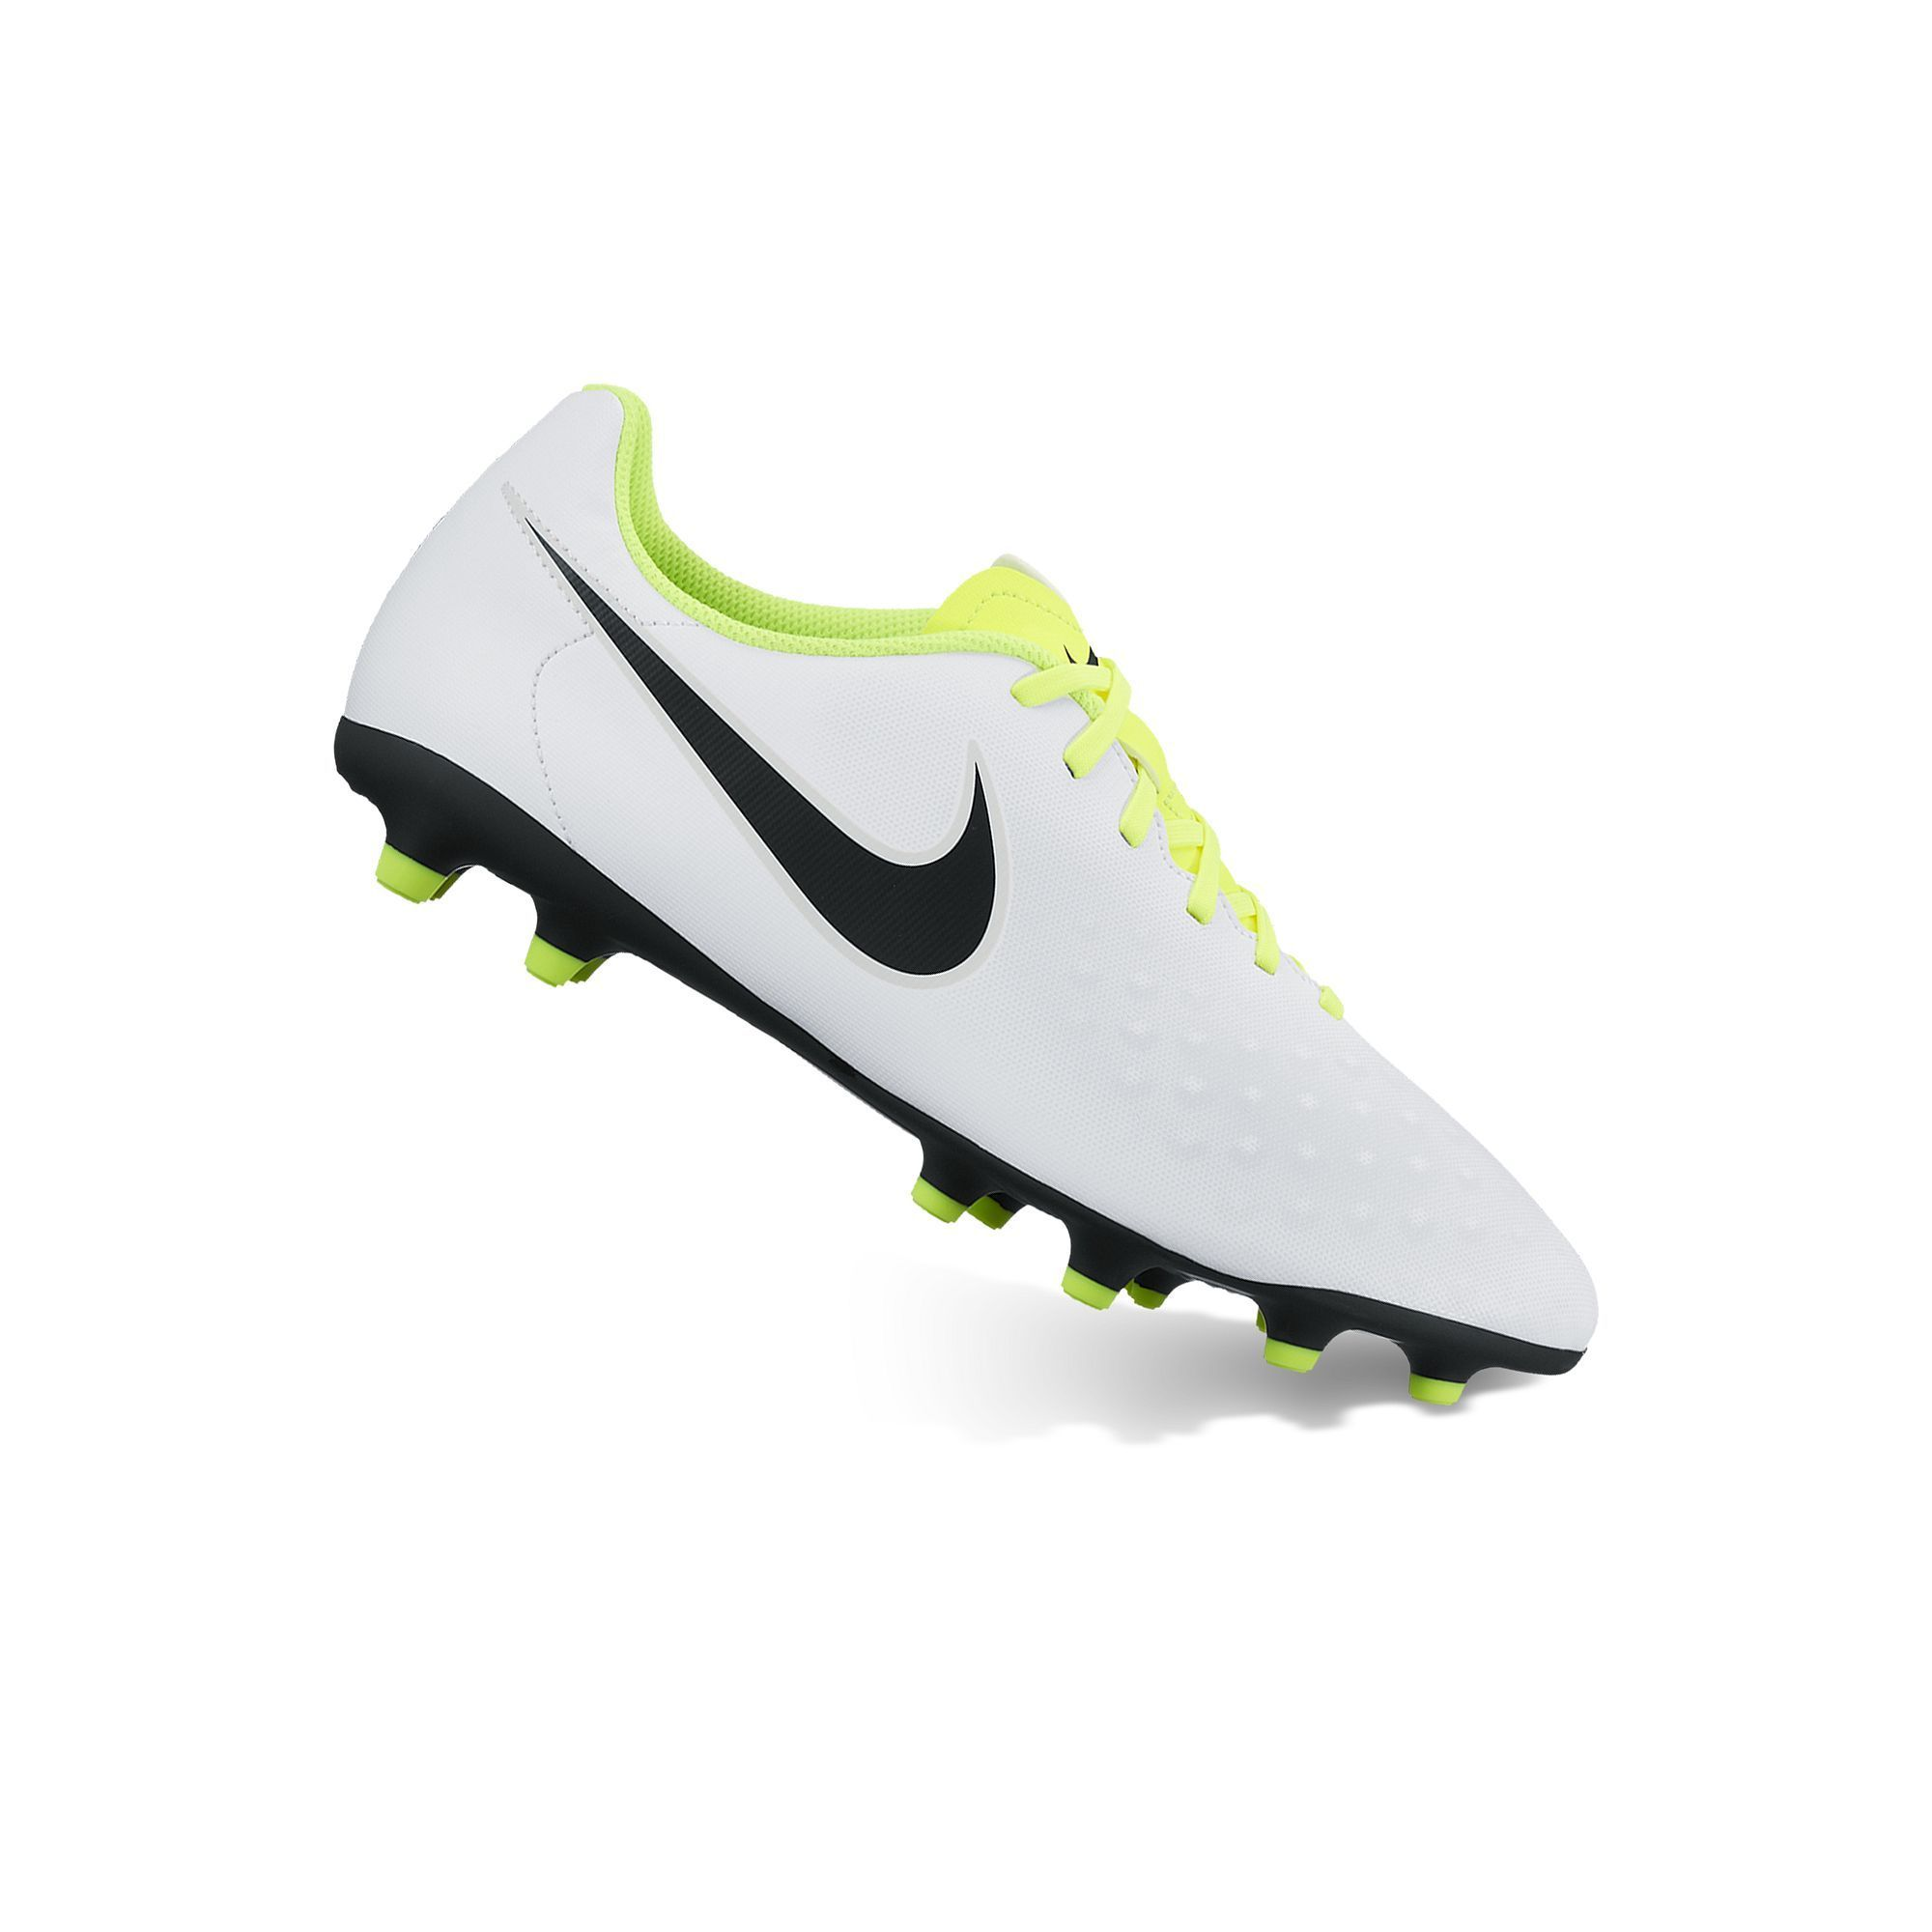 ccbec0f72 Nike Magista Ola II Firm-Ground Men's Soccer Cleats, Size: 11.5, Natural